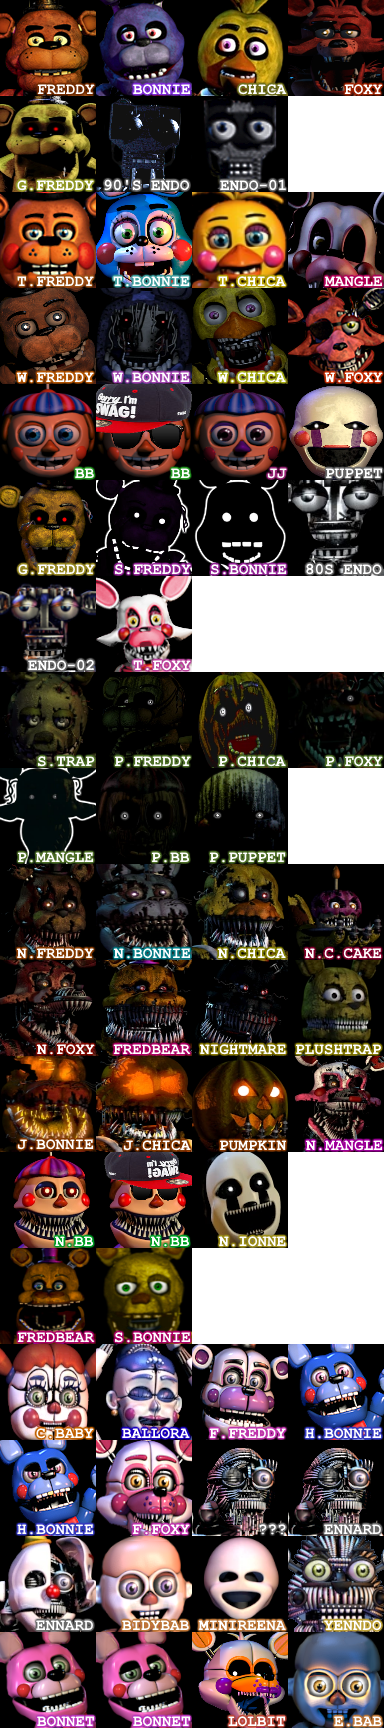 [Fnaf]/[RPG Maker] Every Fnaf Character faceset. by Bonnie-From-Fnafb